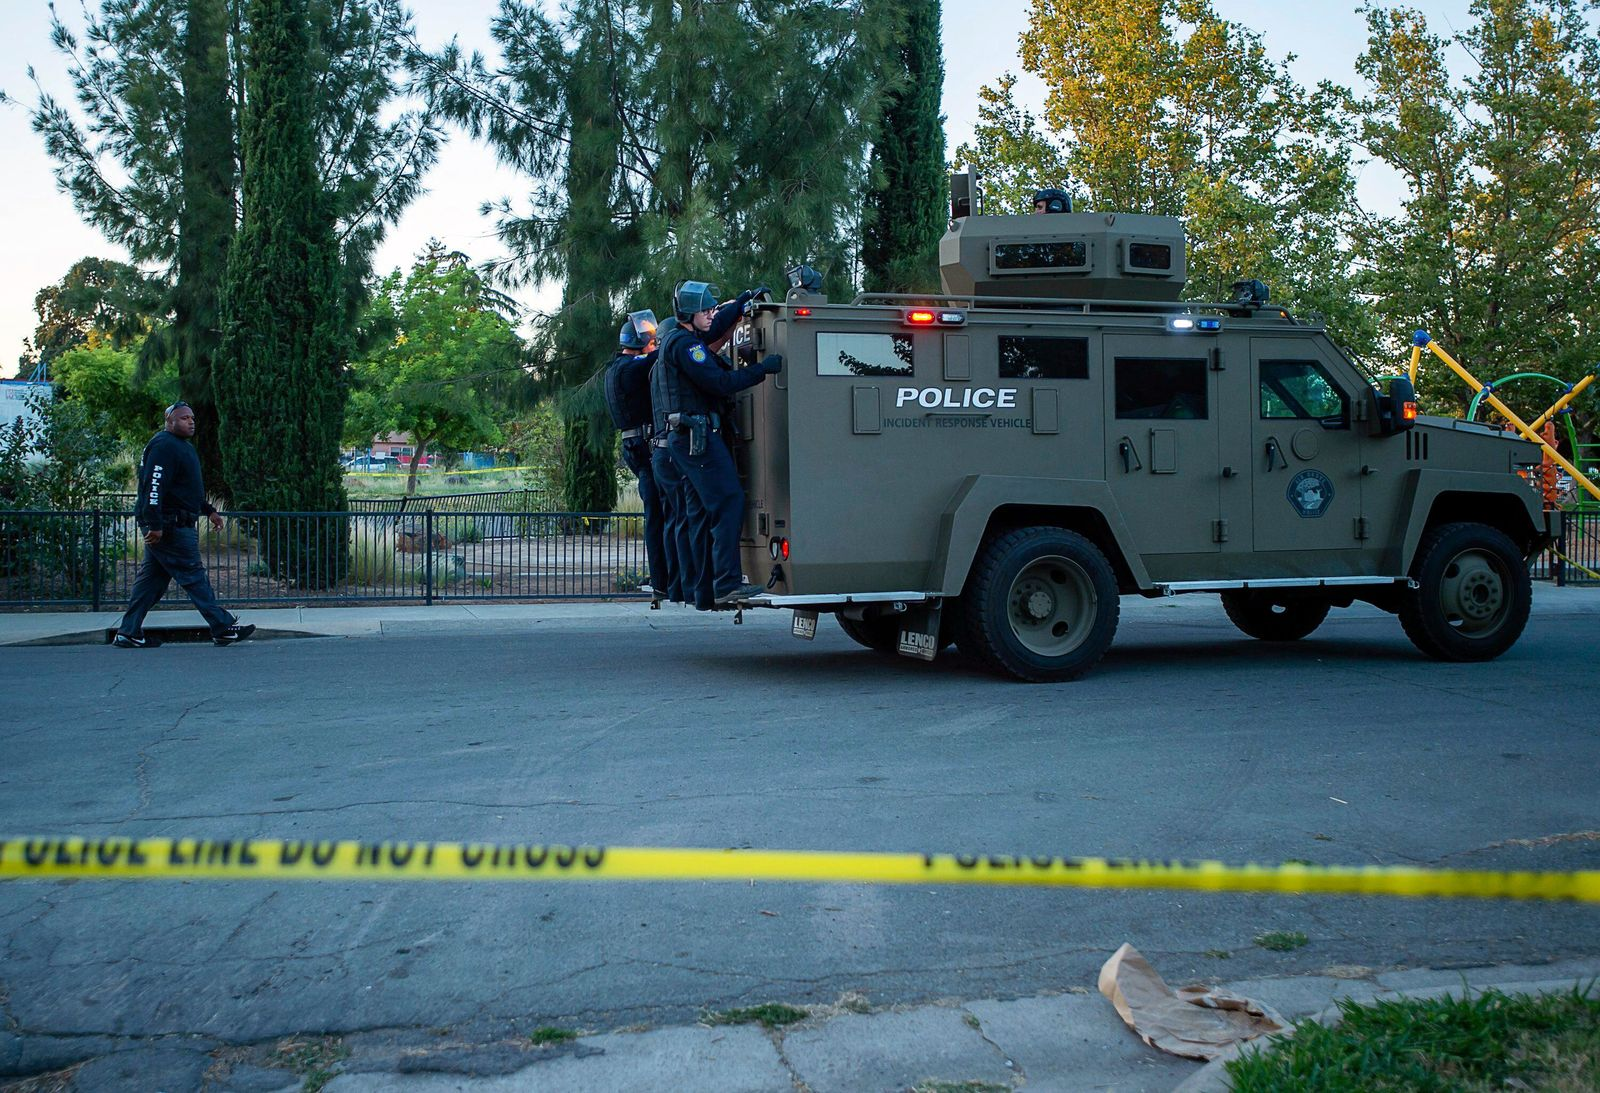 Sacramento police officers respond to a shooting on Redwood Avenue in the Noralto neighborhood, Wednesday, June 19, 2019, in Sacramento, Calif. (Paul Kitagaki Jr./The Sacramento Bee via AP)